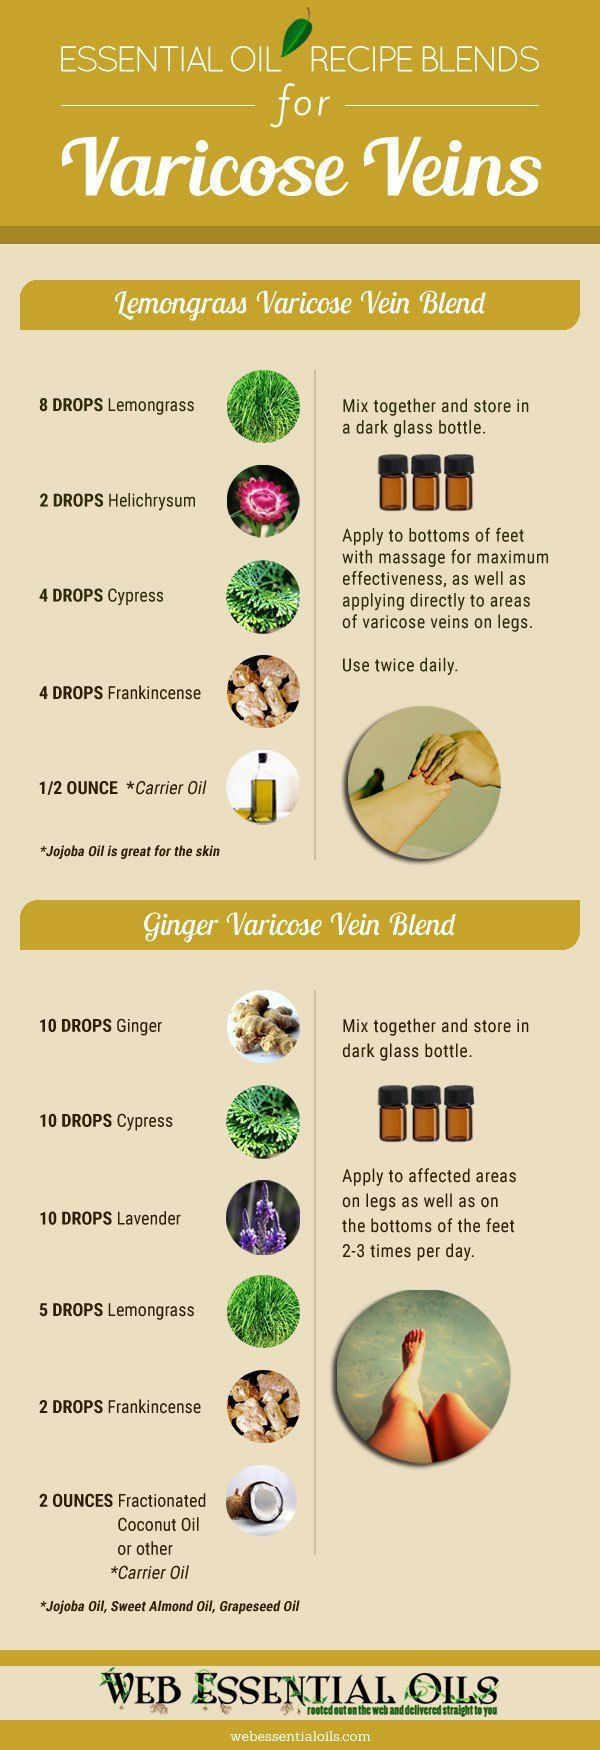 essential oils for varicose veins infographic                                                                                                                                                                                 More